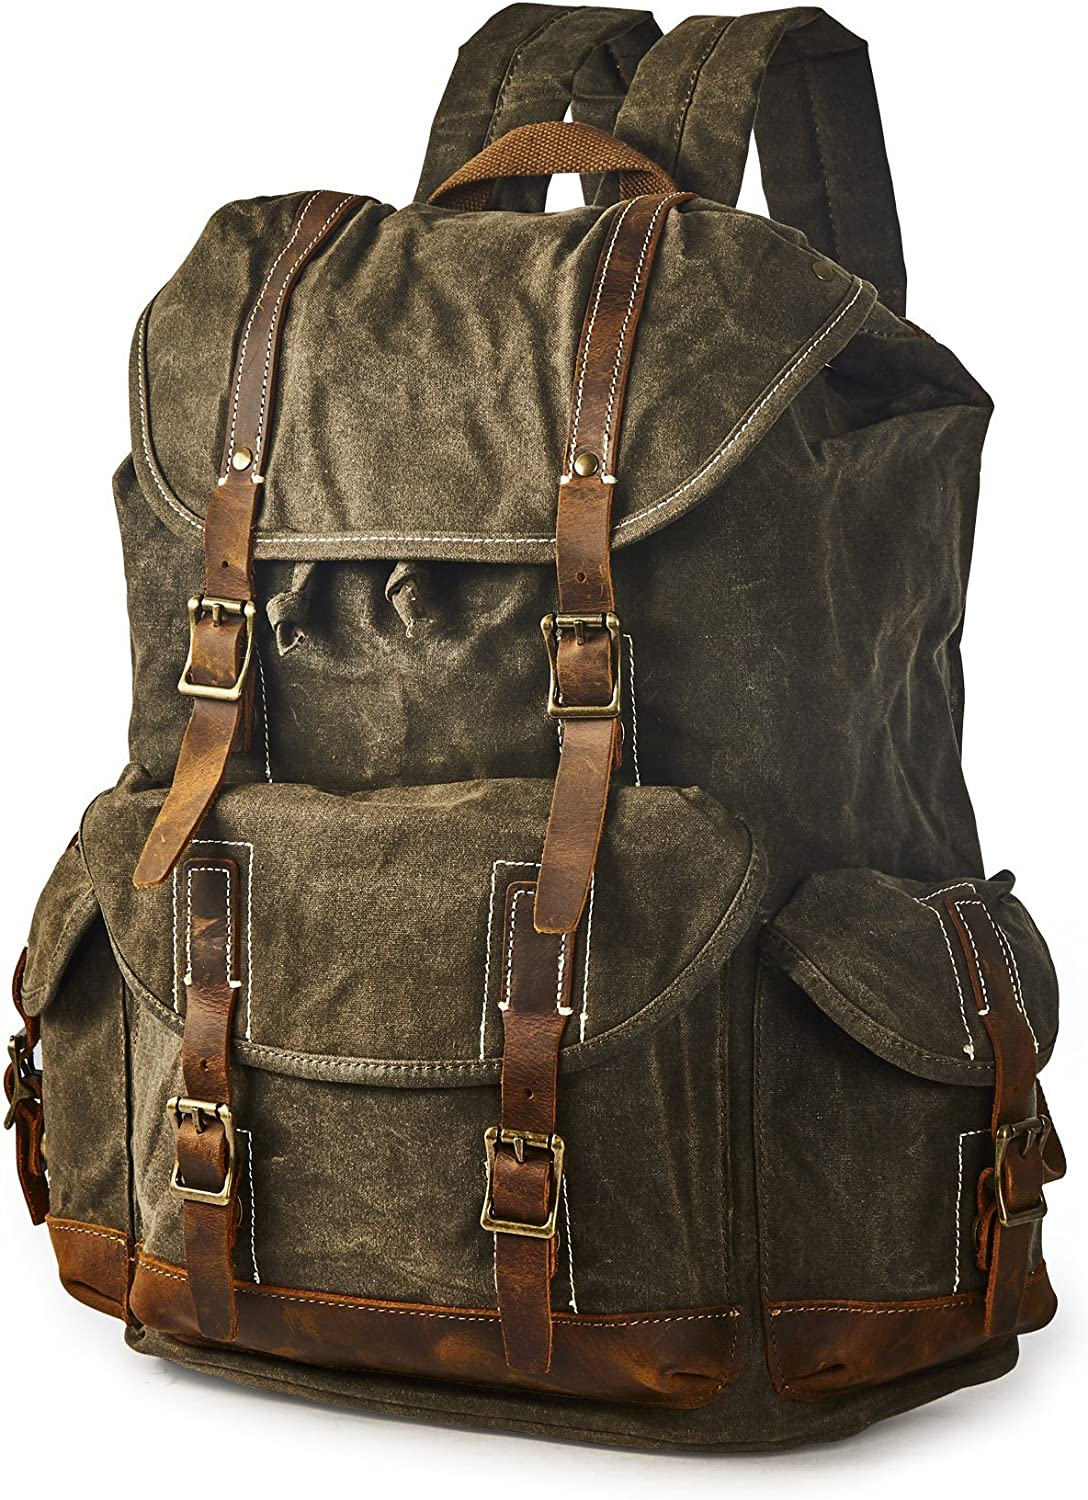 BRASS TACKS Leathercraft Men's Heavy Duty Canvas Genuine Leather Buckle Cargo Pocket Utility Cinched Backpack